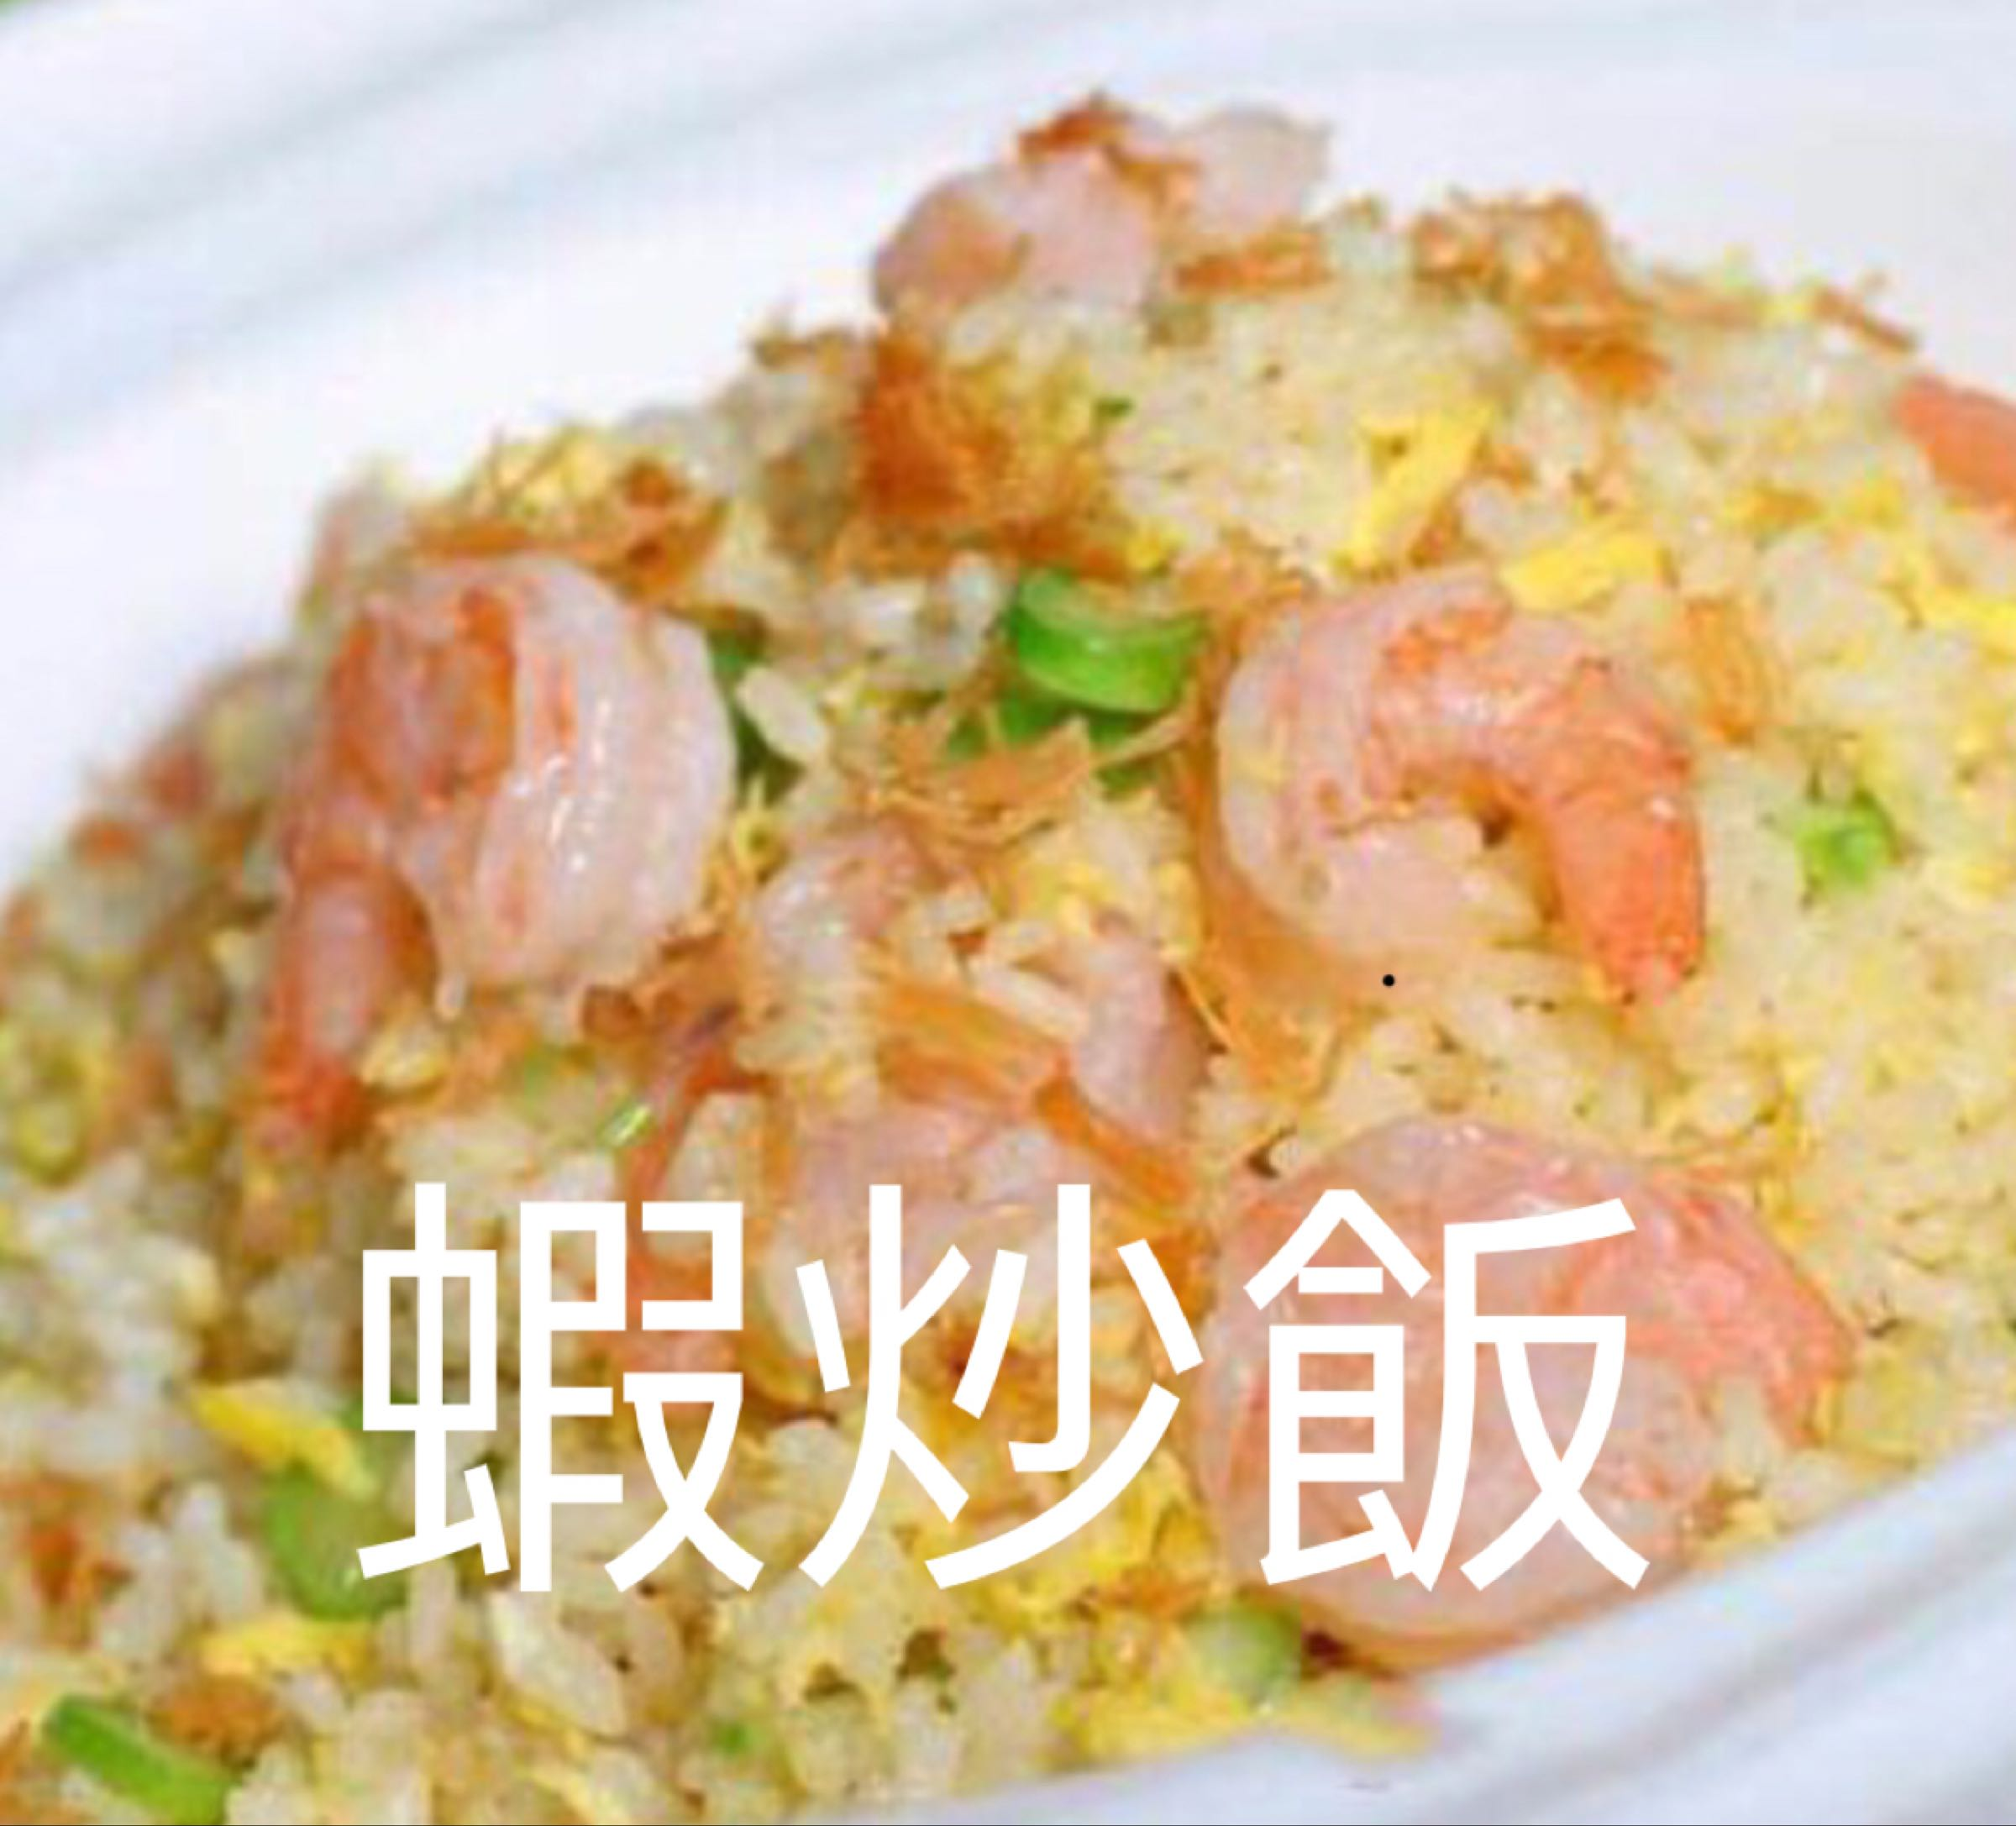 蝦炒飯 Prawn Fried Rice